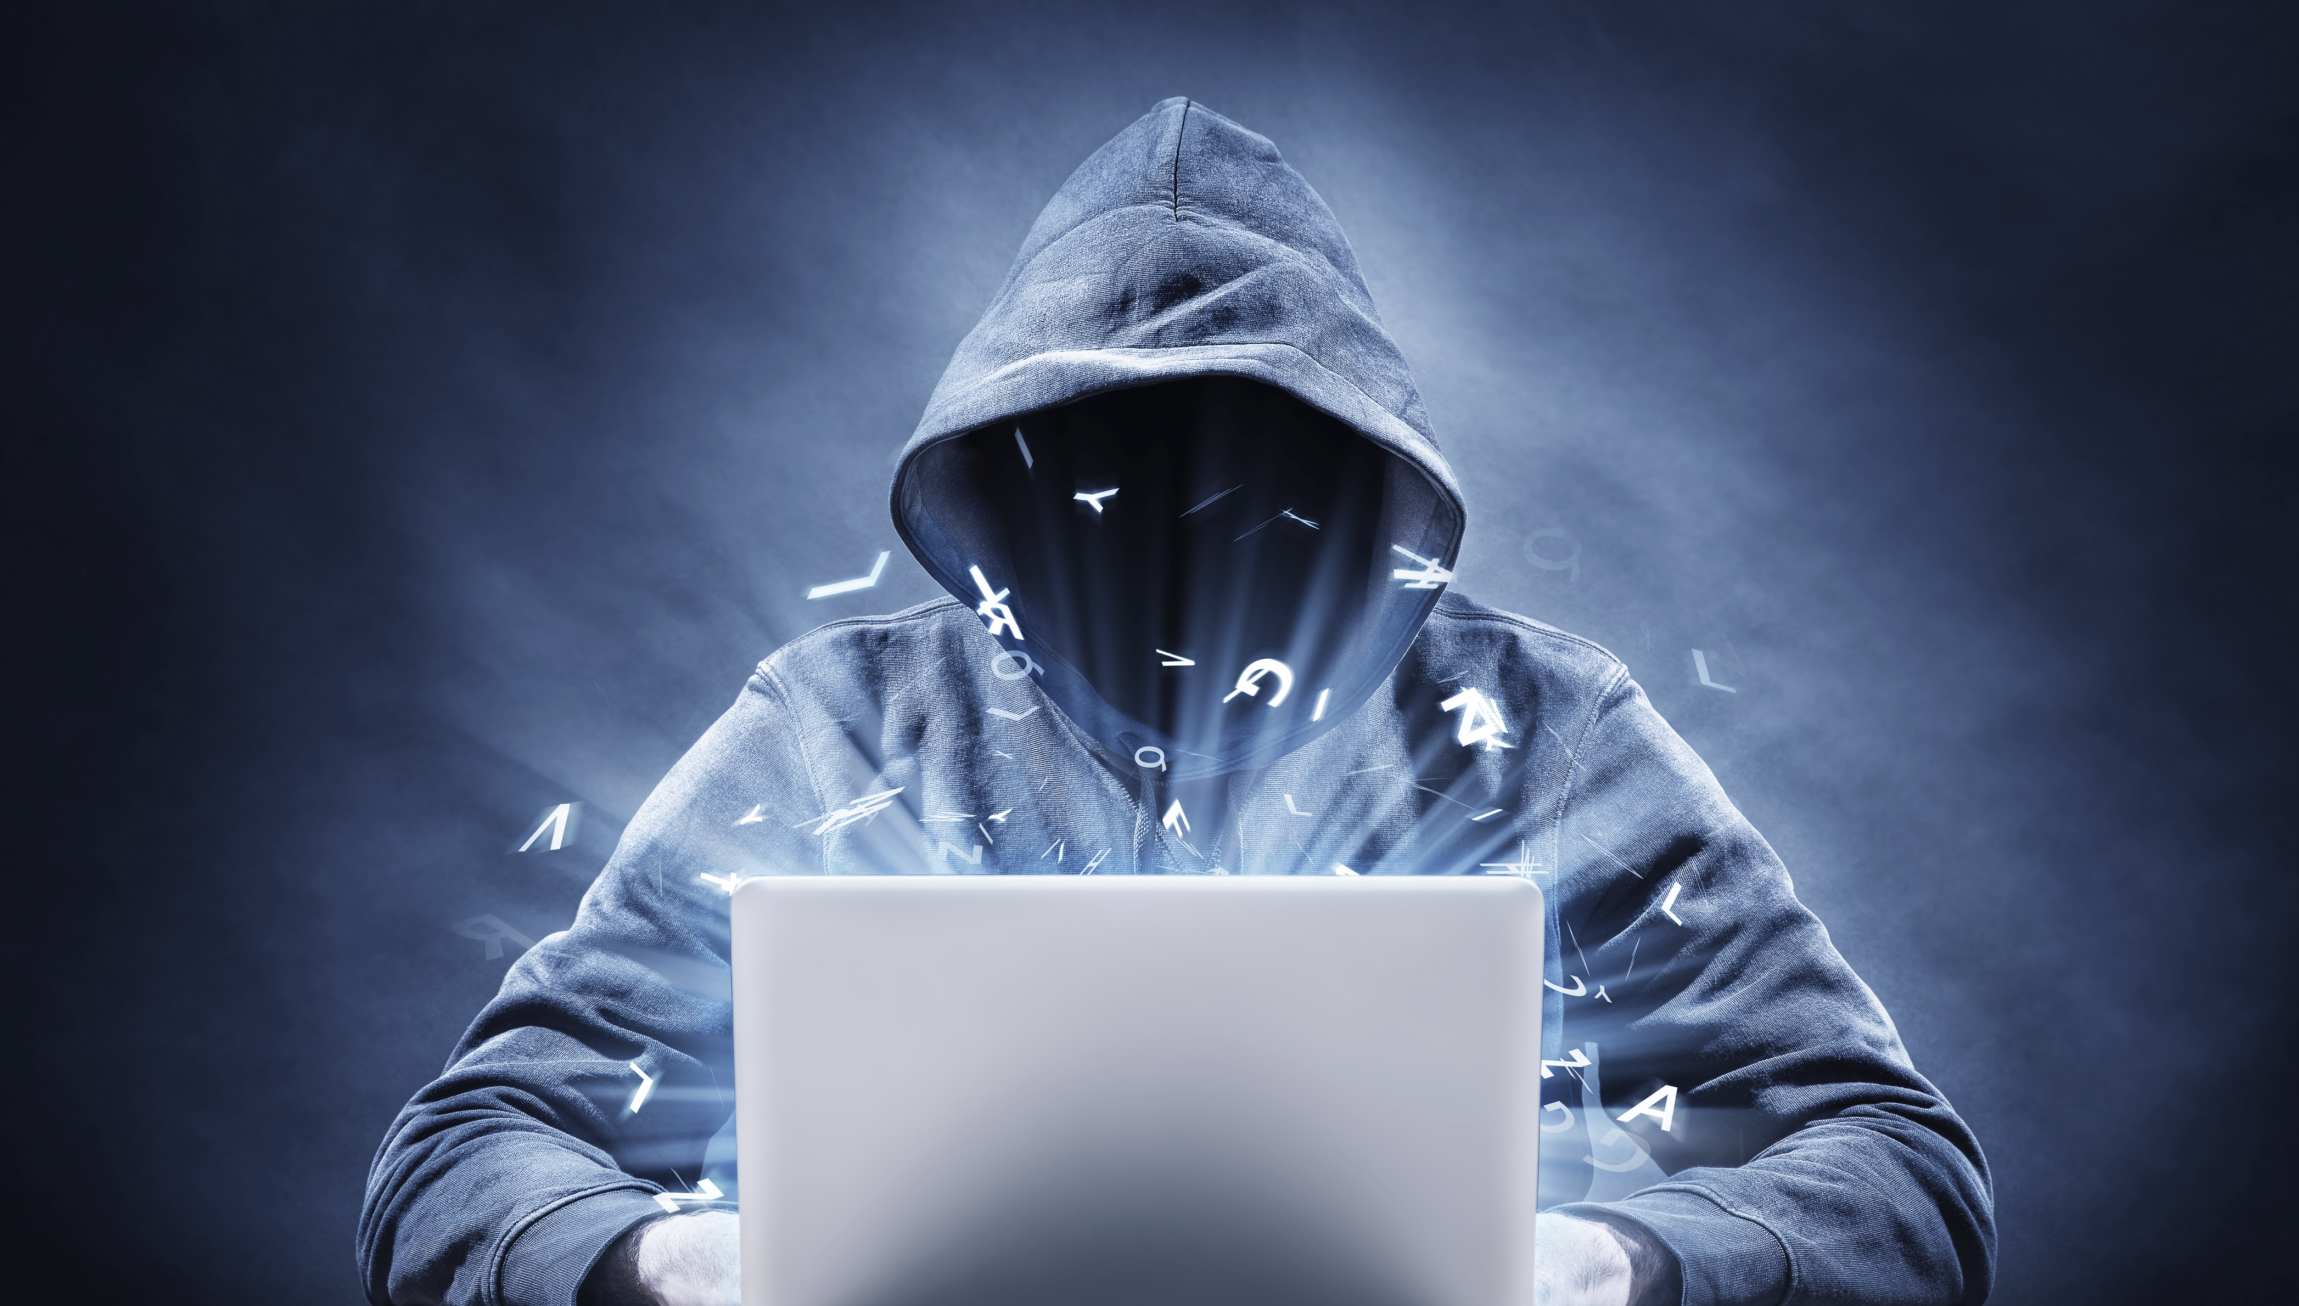 Learn hacking from White Hat Hackers - Live Online or in St. Louis Area